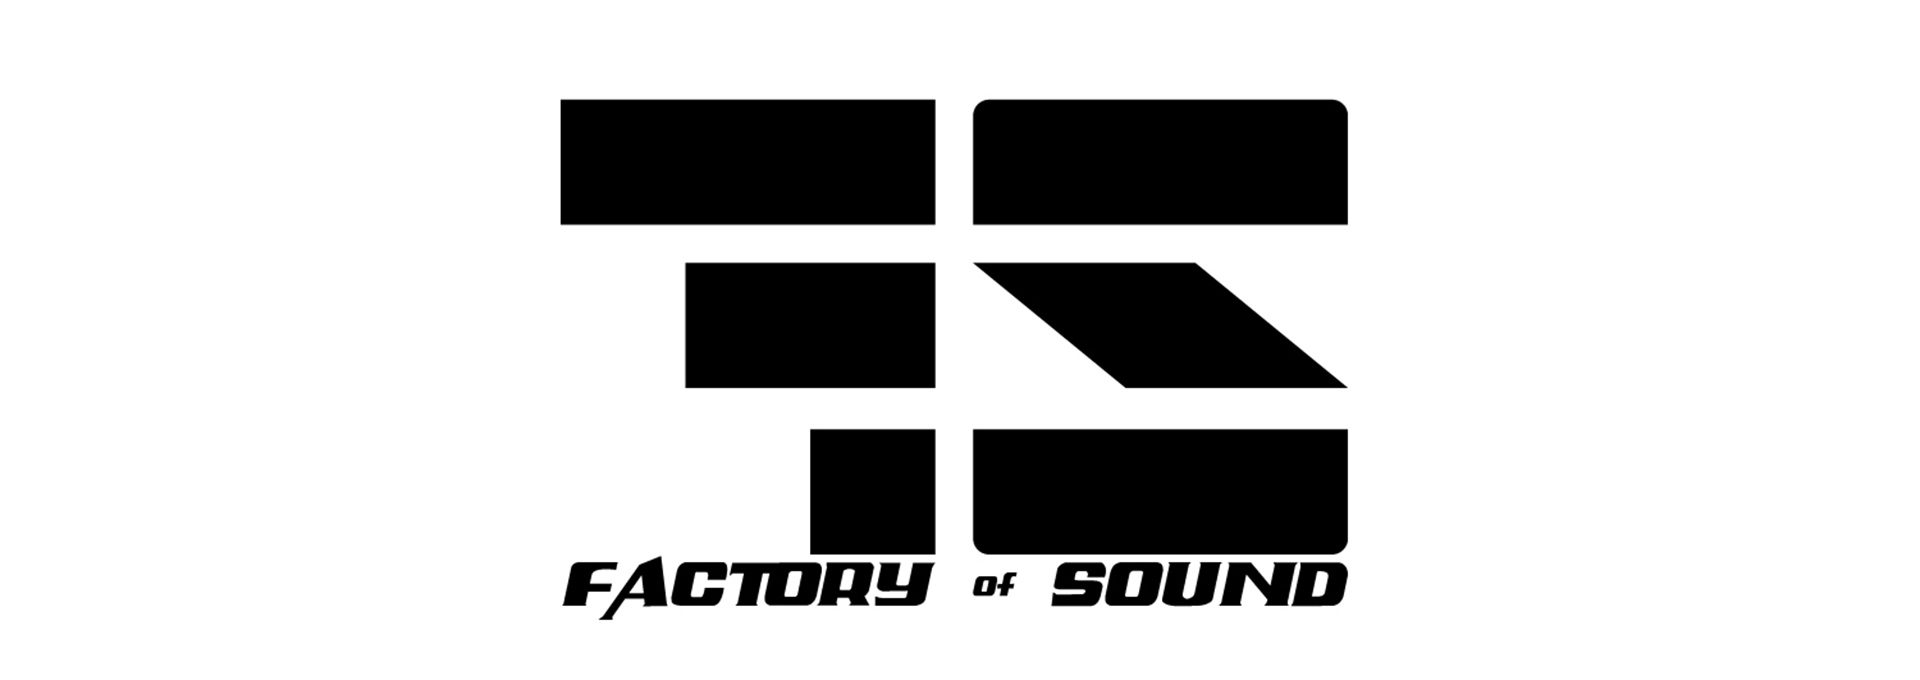 FACTORY OF SOUND